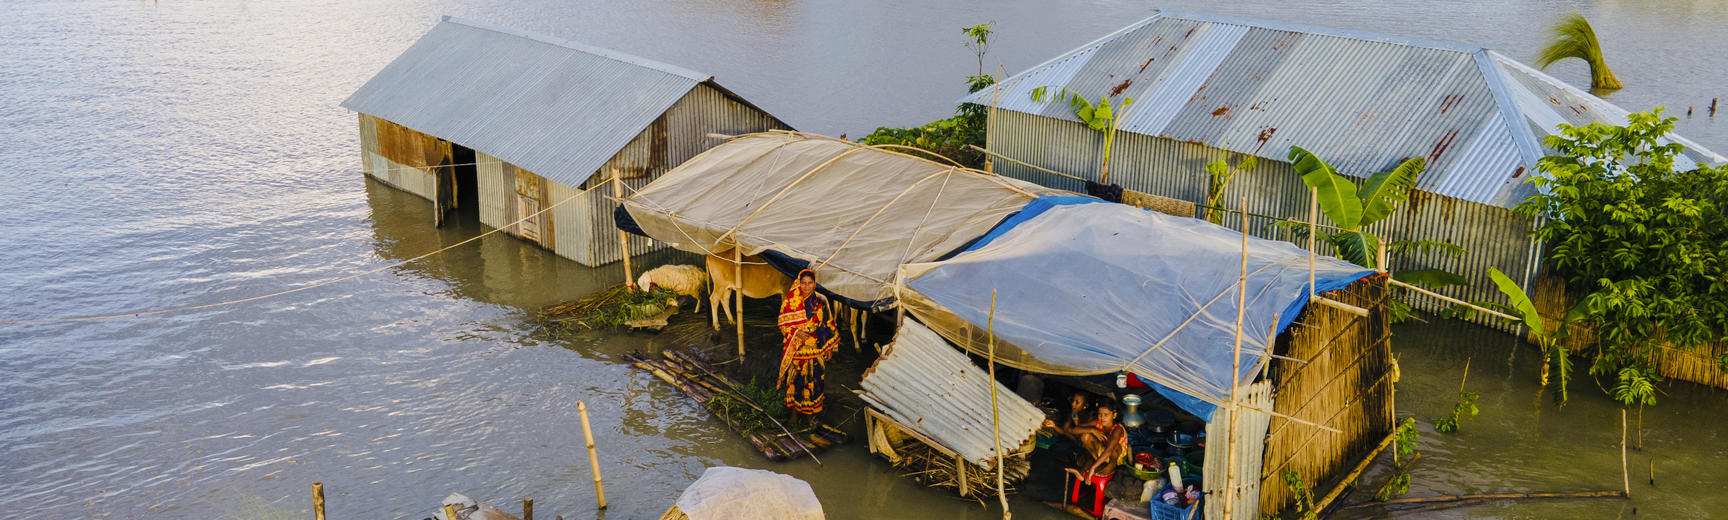 Image of houses stranded in flood water with people inside